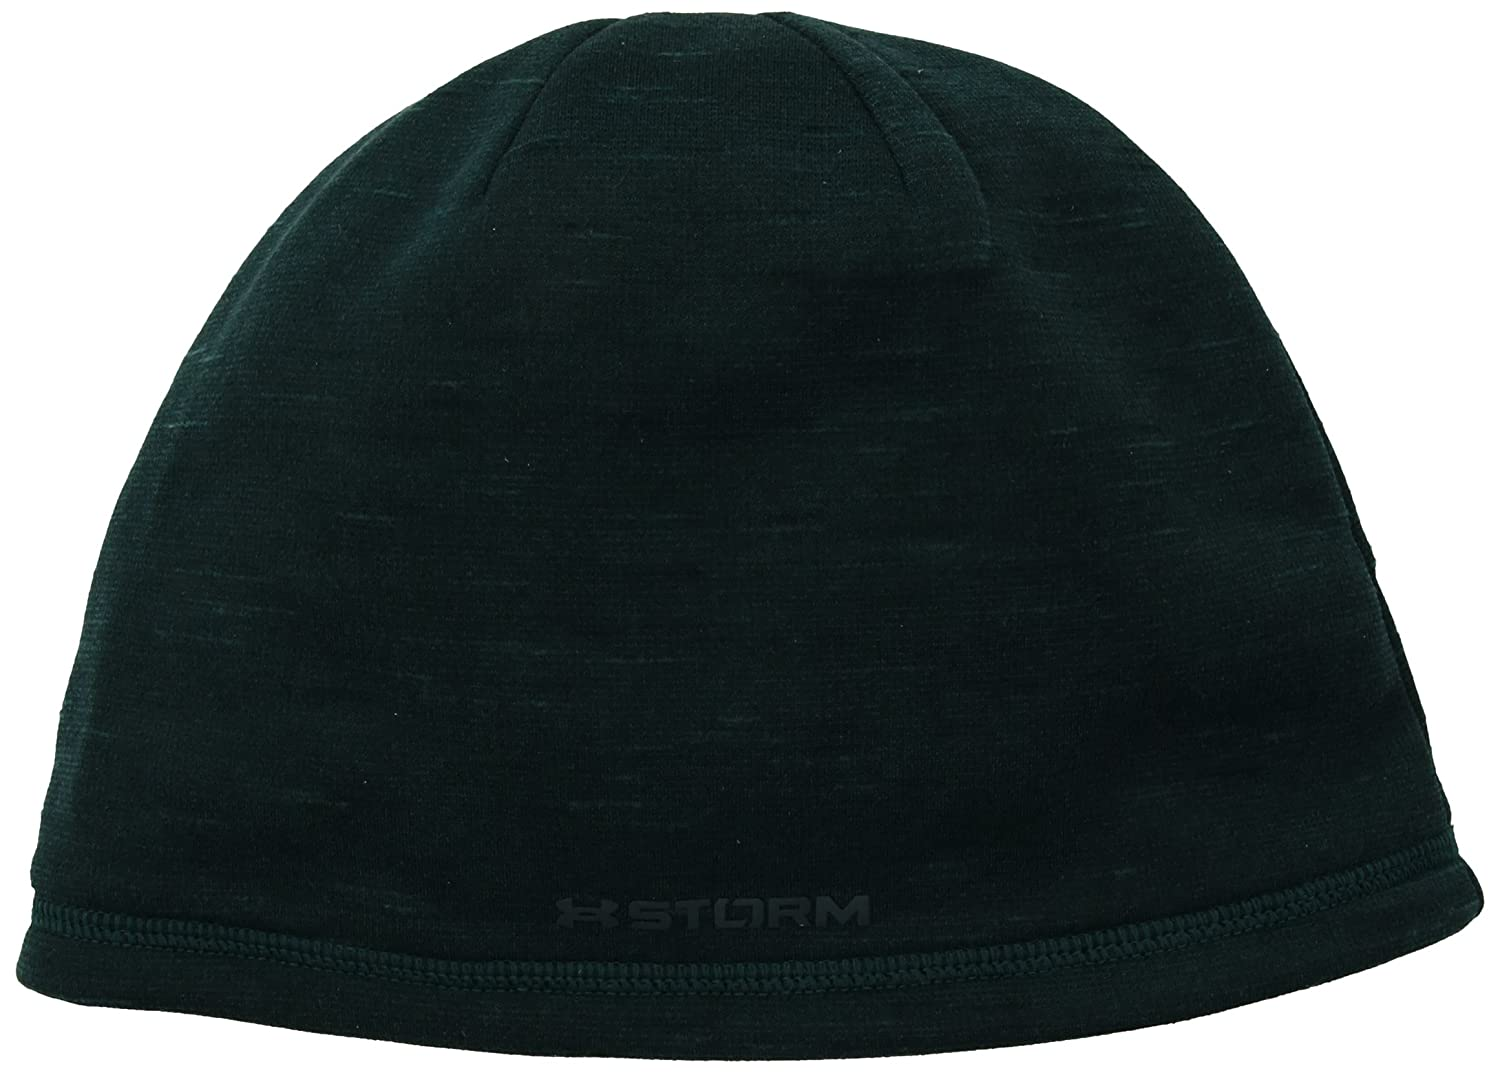 9086342cb27 Amazon.com  Under Armour Men s ColdGear Reactor Elements Beanie ...